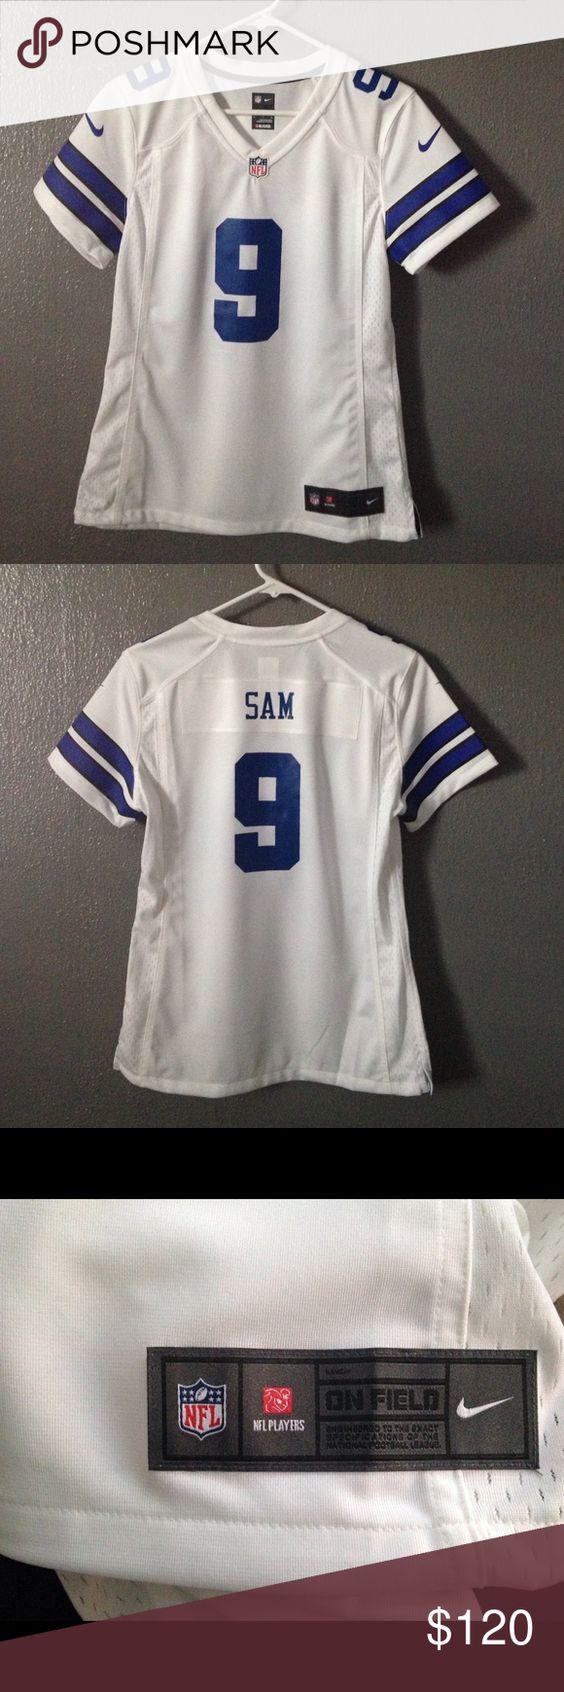 Dallas Cowboys women's jersey Any Cowboys fans named Sam? NFL game jersey. Women's small. Never worn. Tops Tees - Short Sleeve